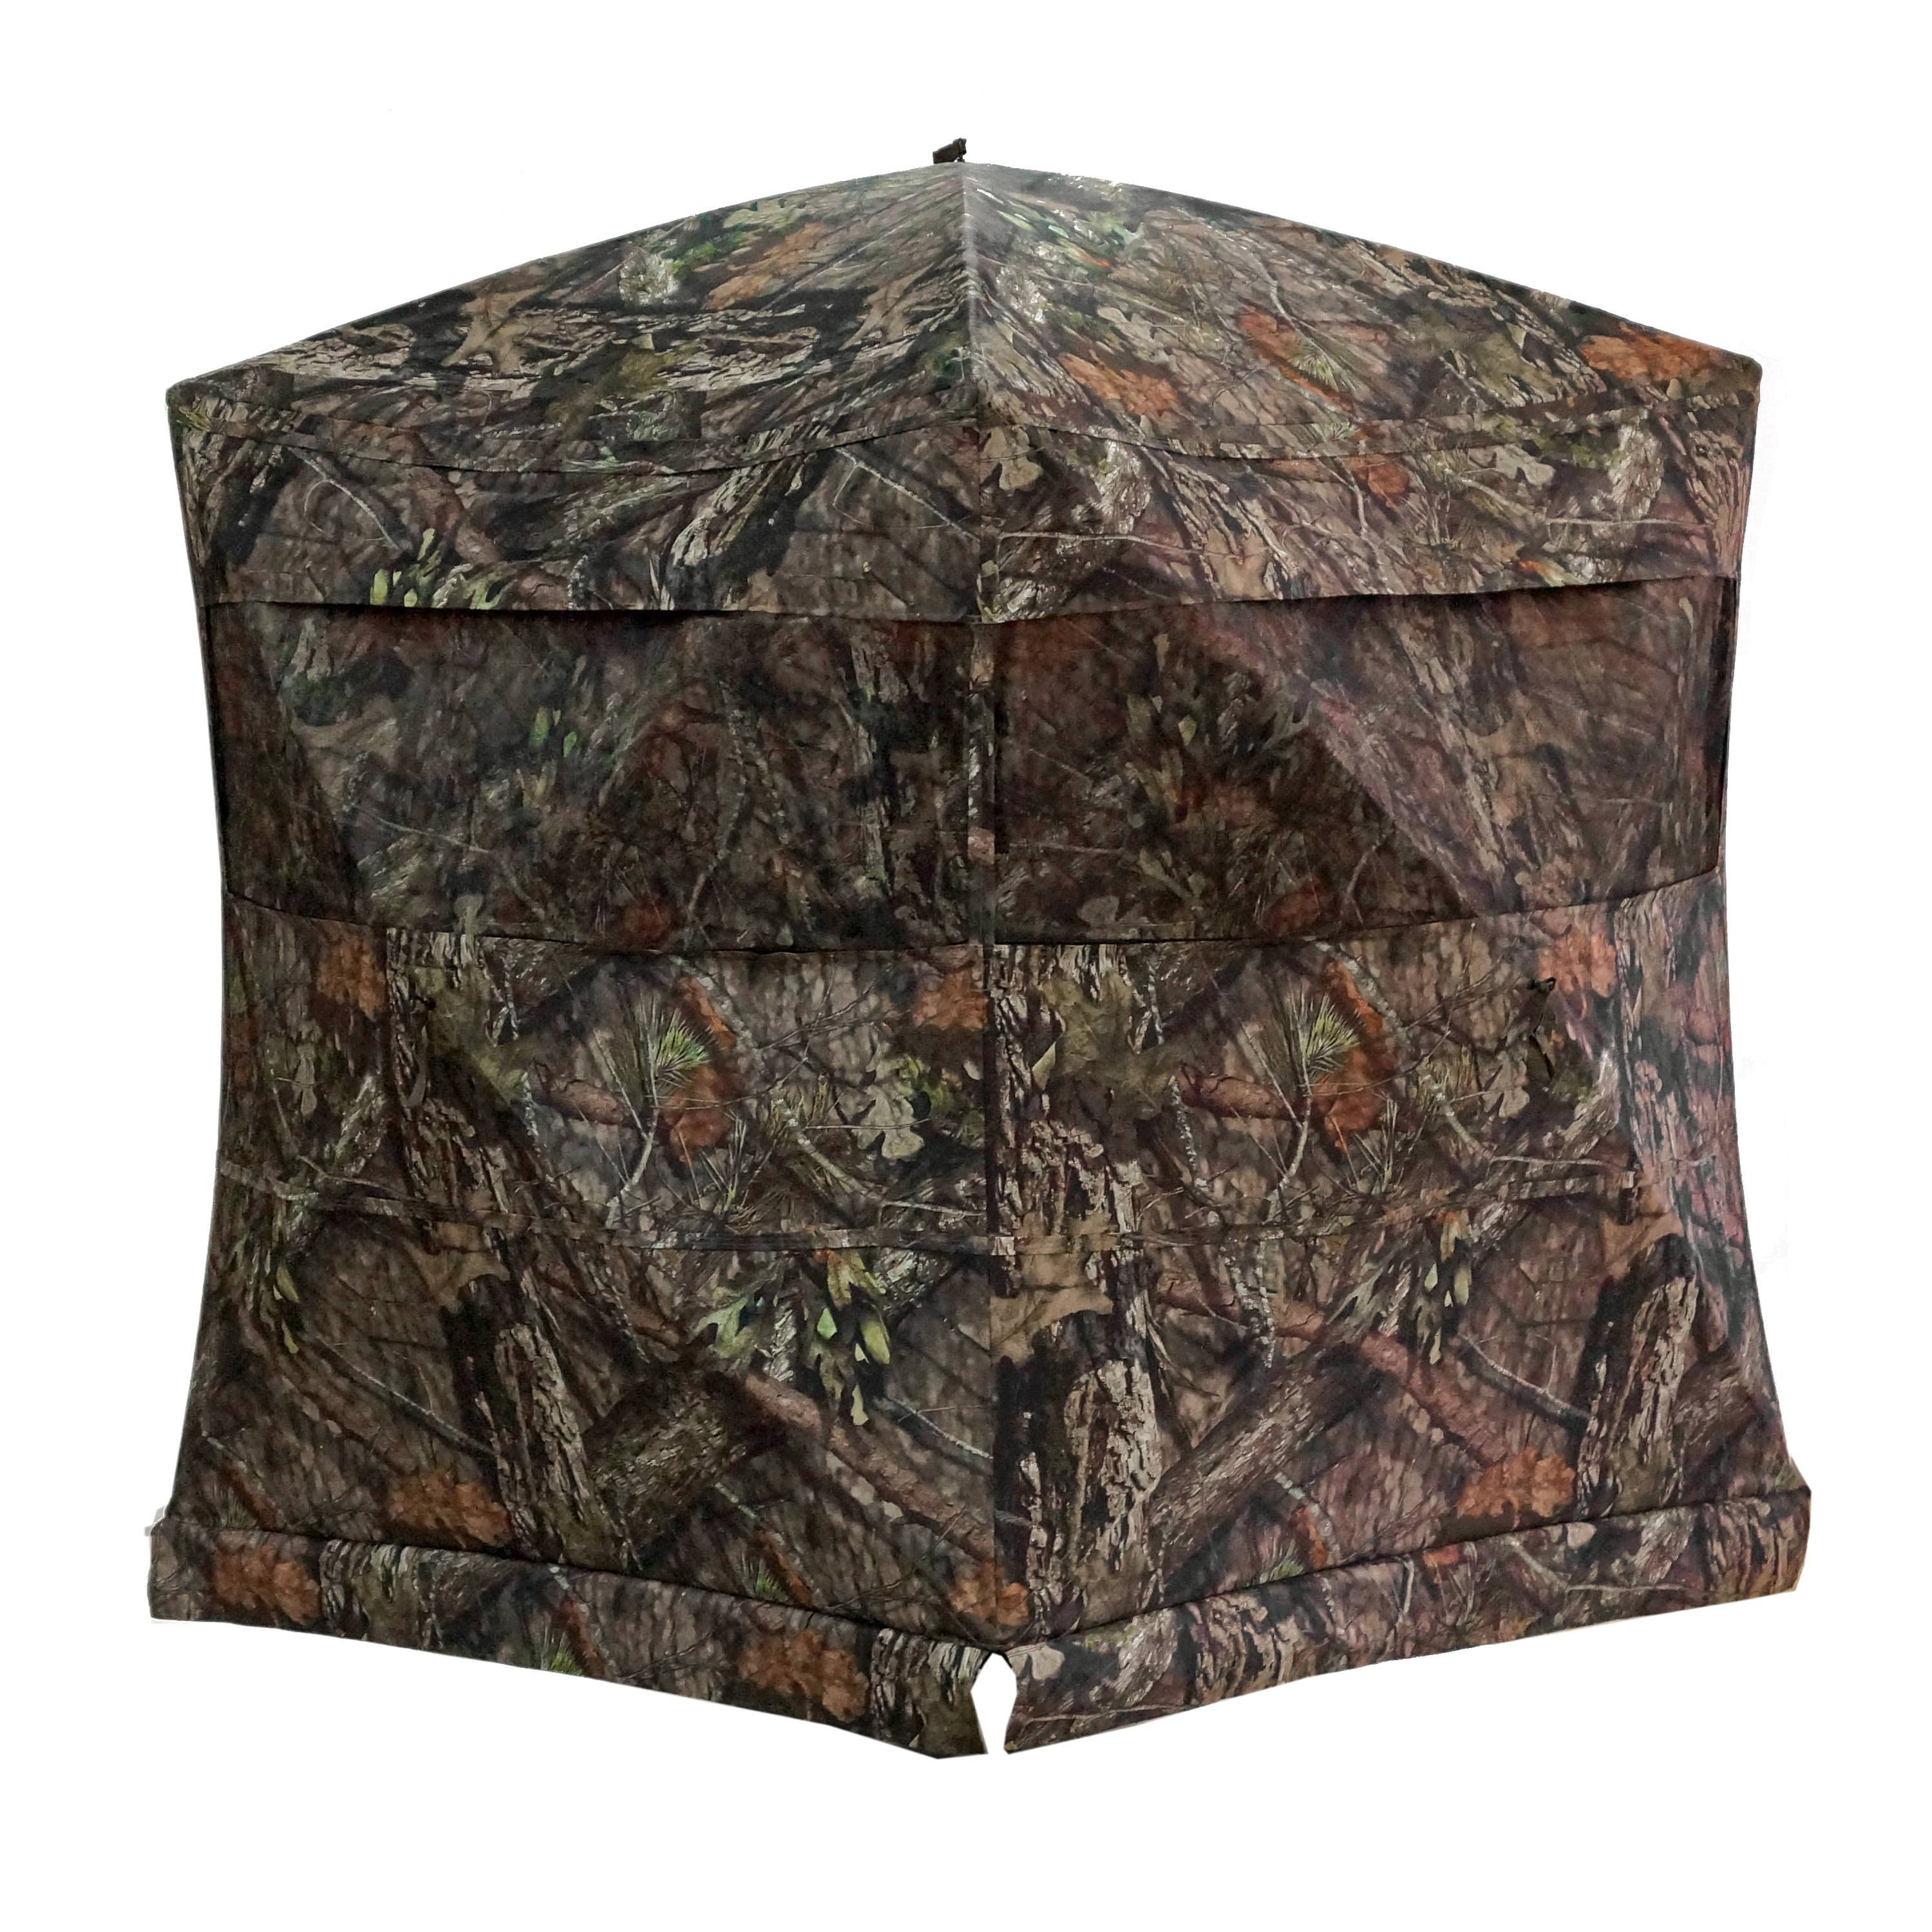 RHINO-200 HUNTING BLIND